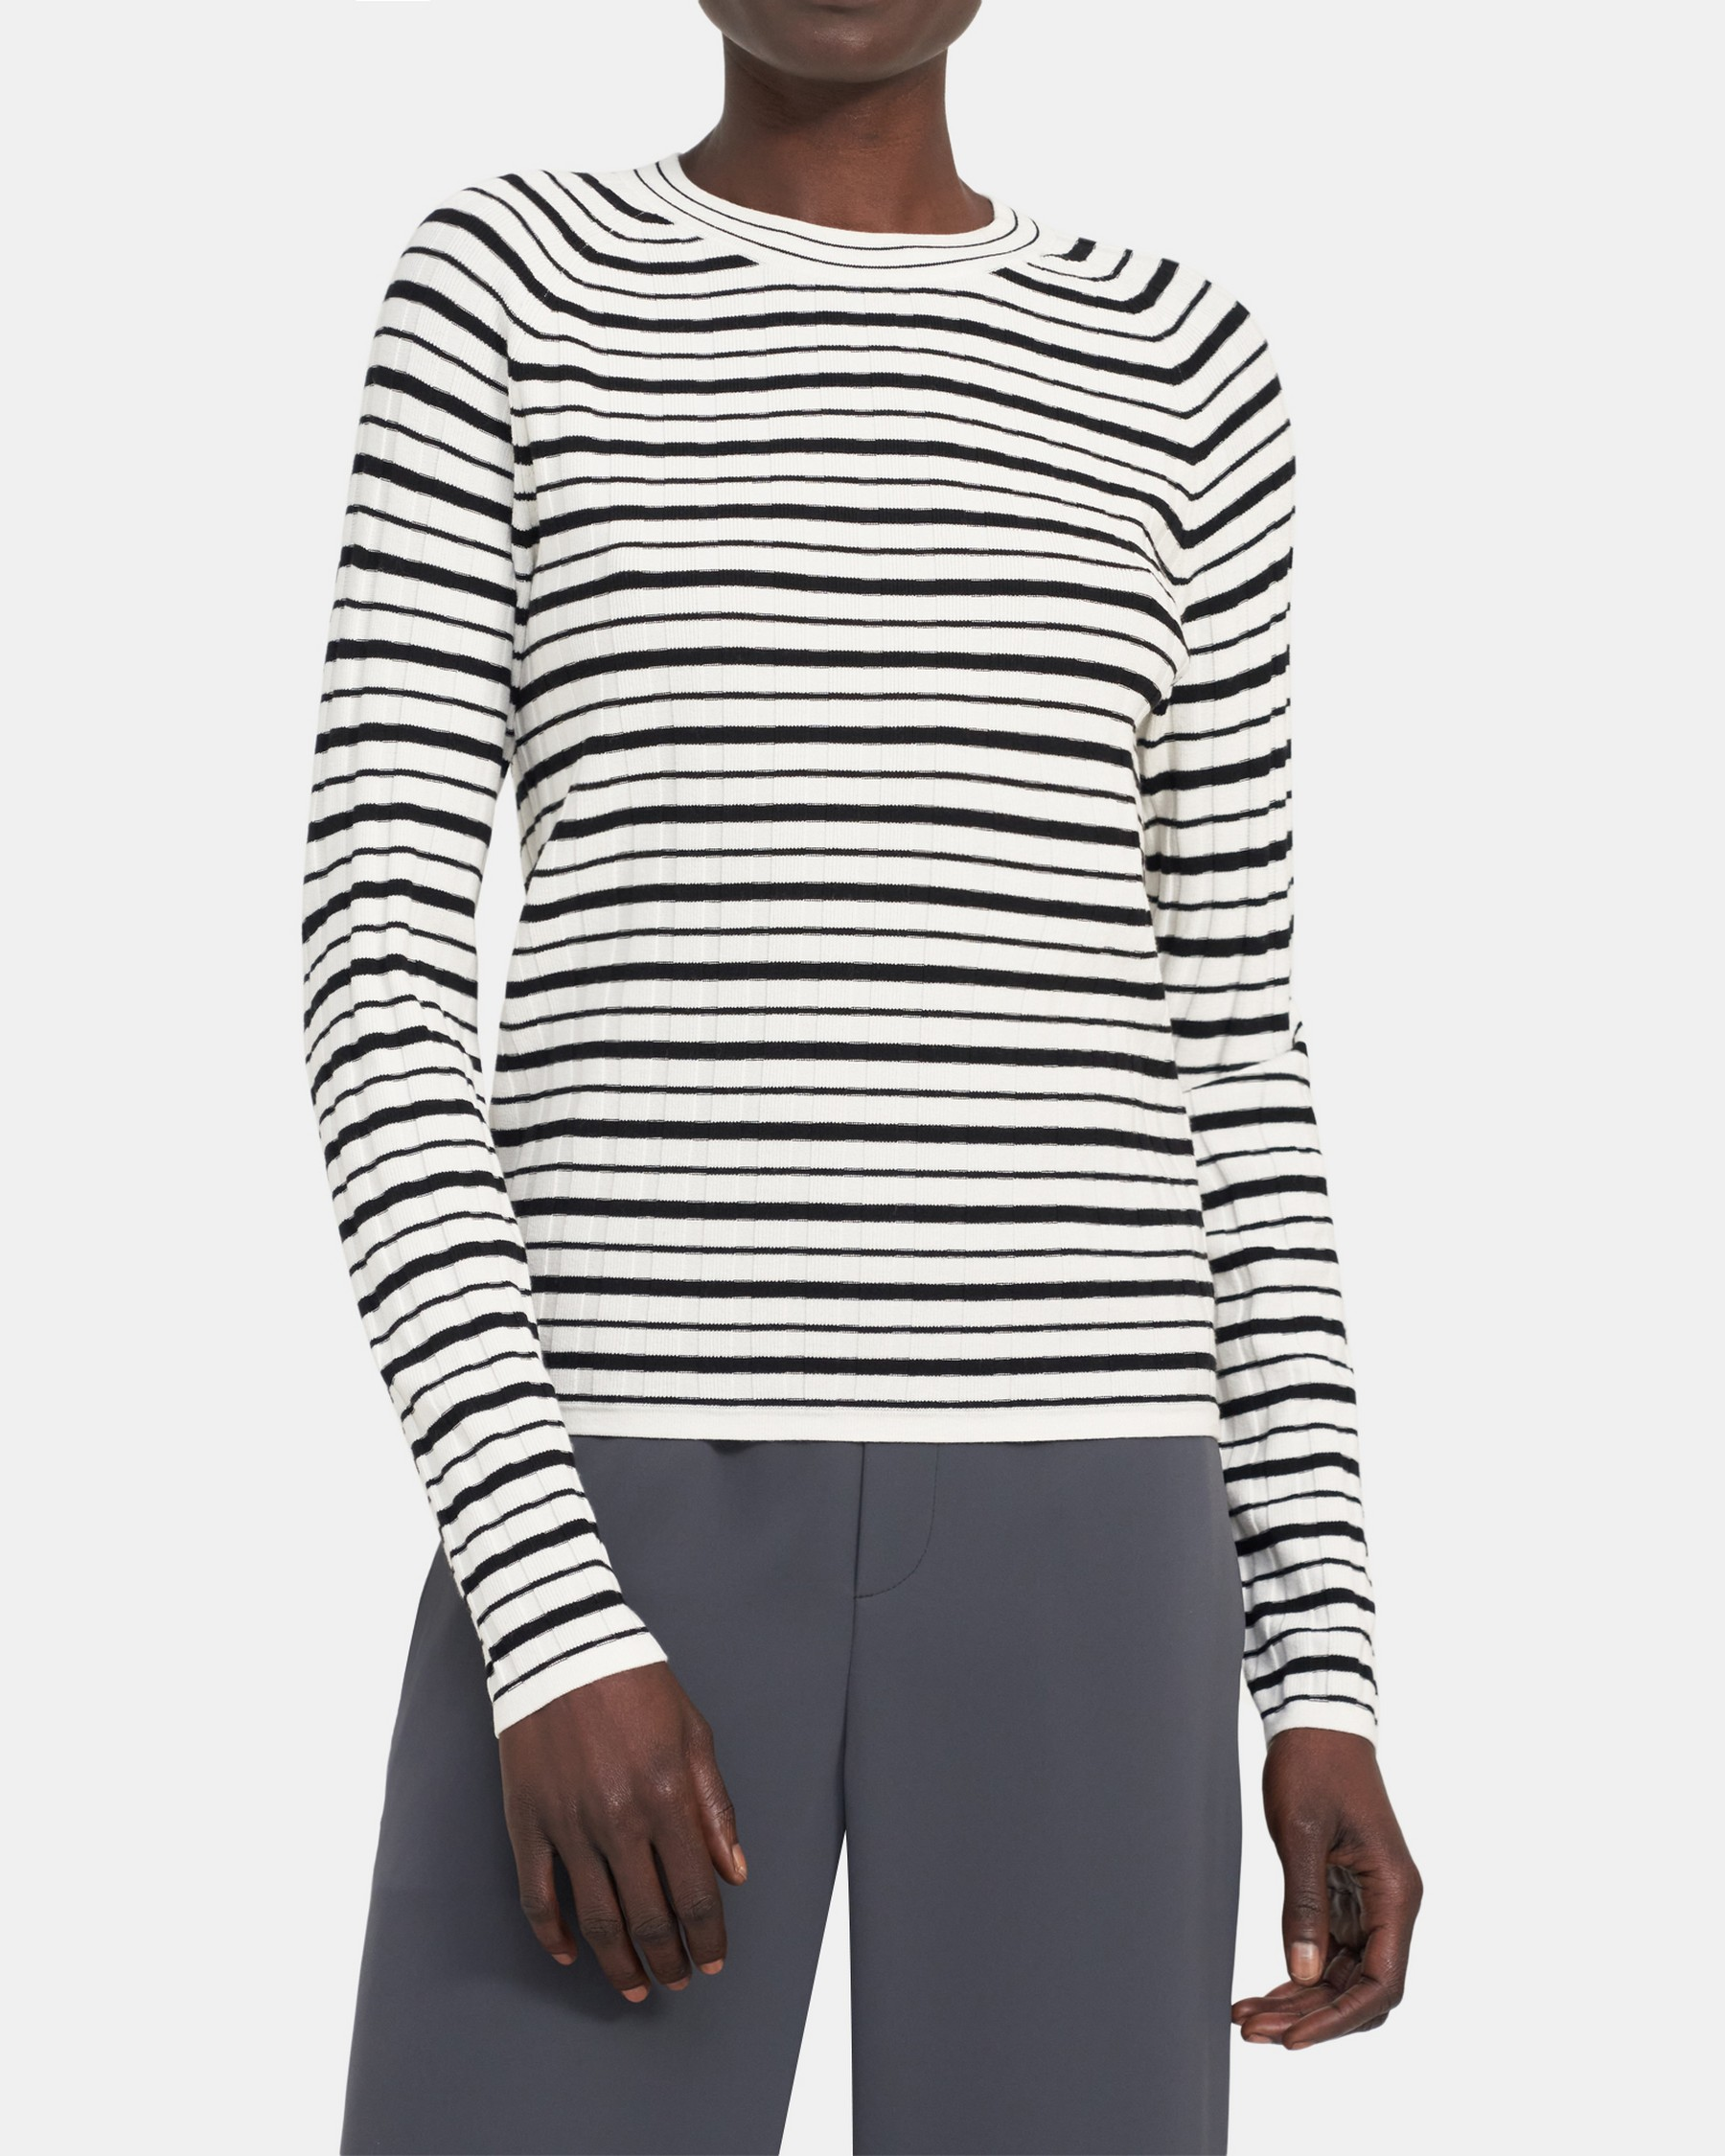 Theory Striped Ribbed Crewneck in Compact Sweater Knit